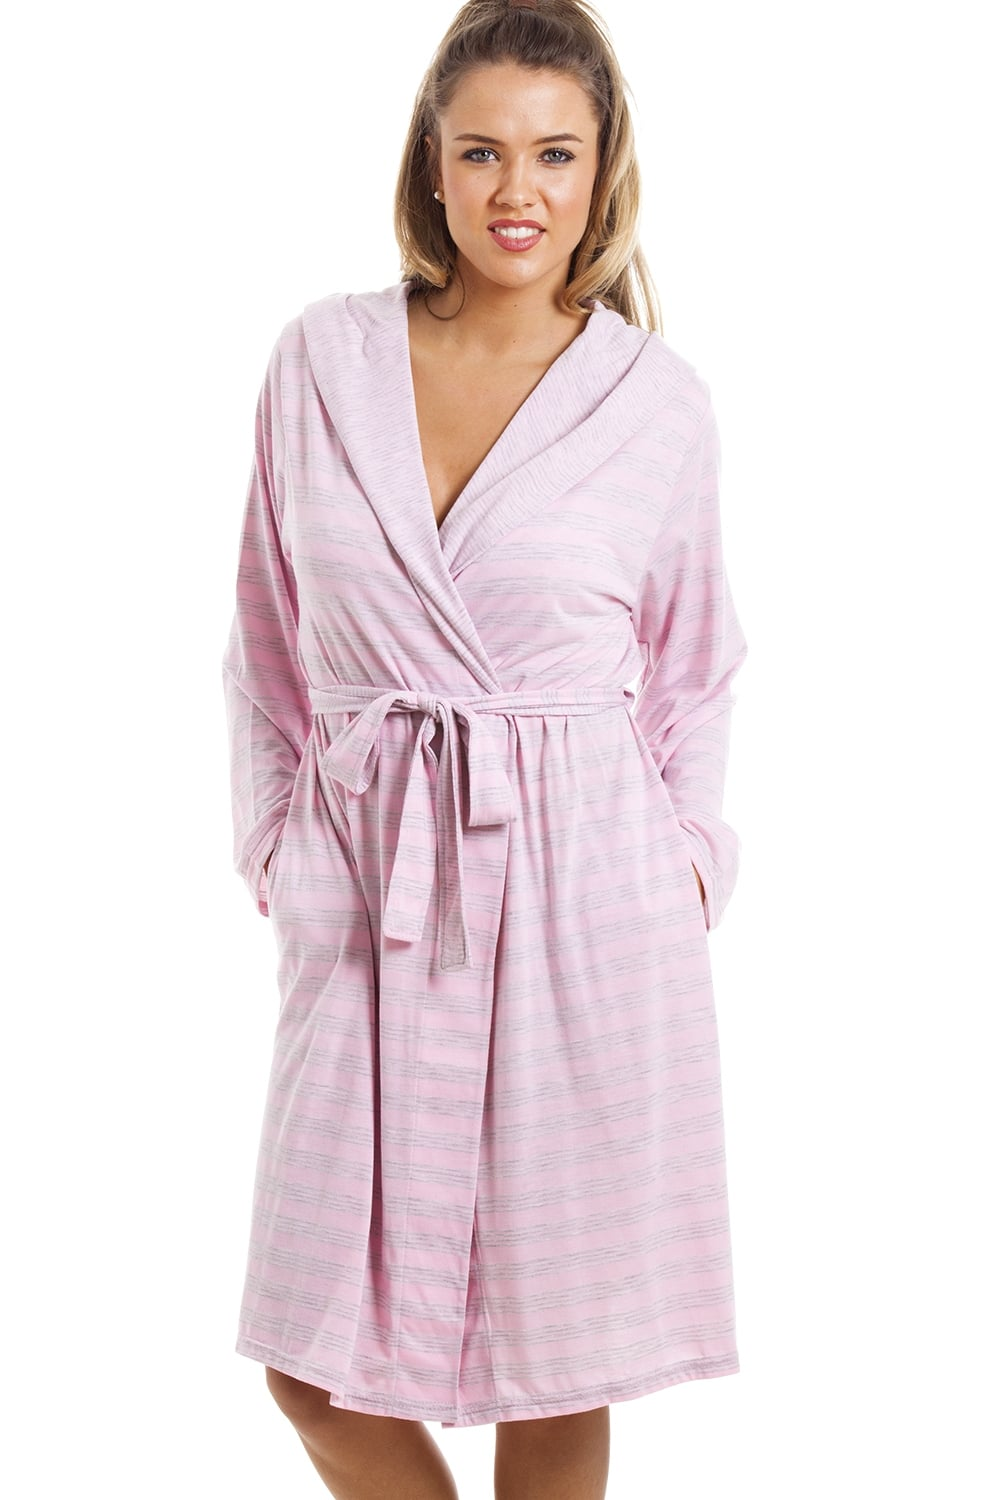 Knee Length Long Sleeve Hooded Grey And Pink Striped Dressing Gown